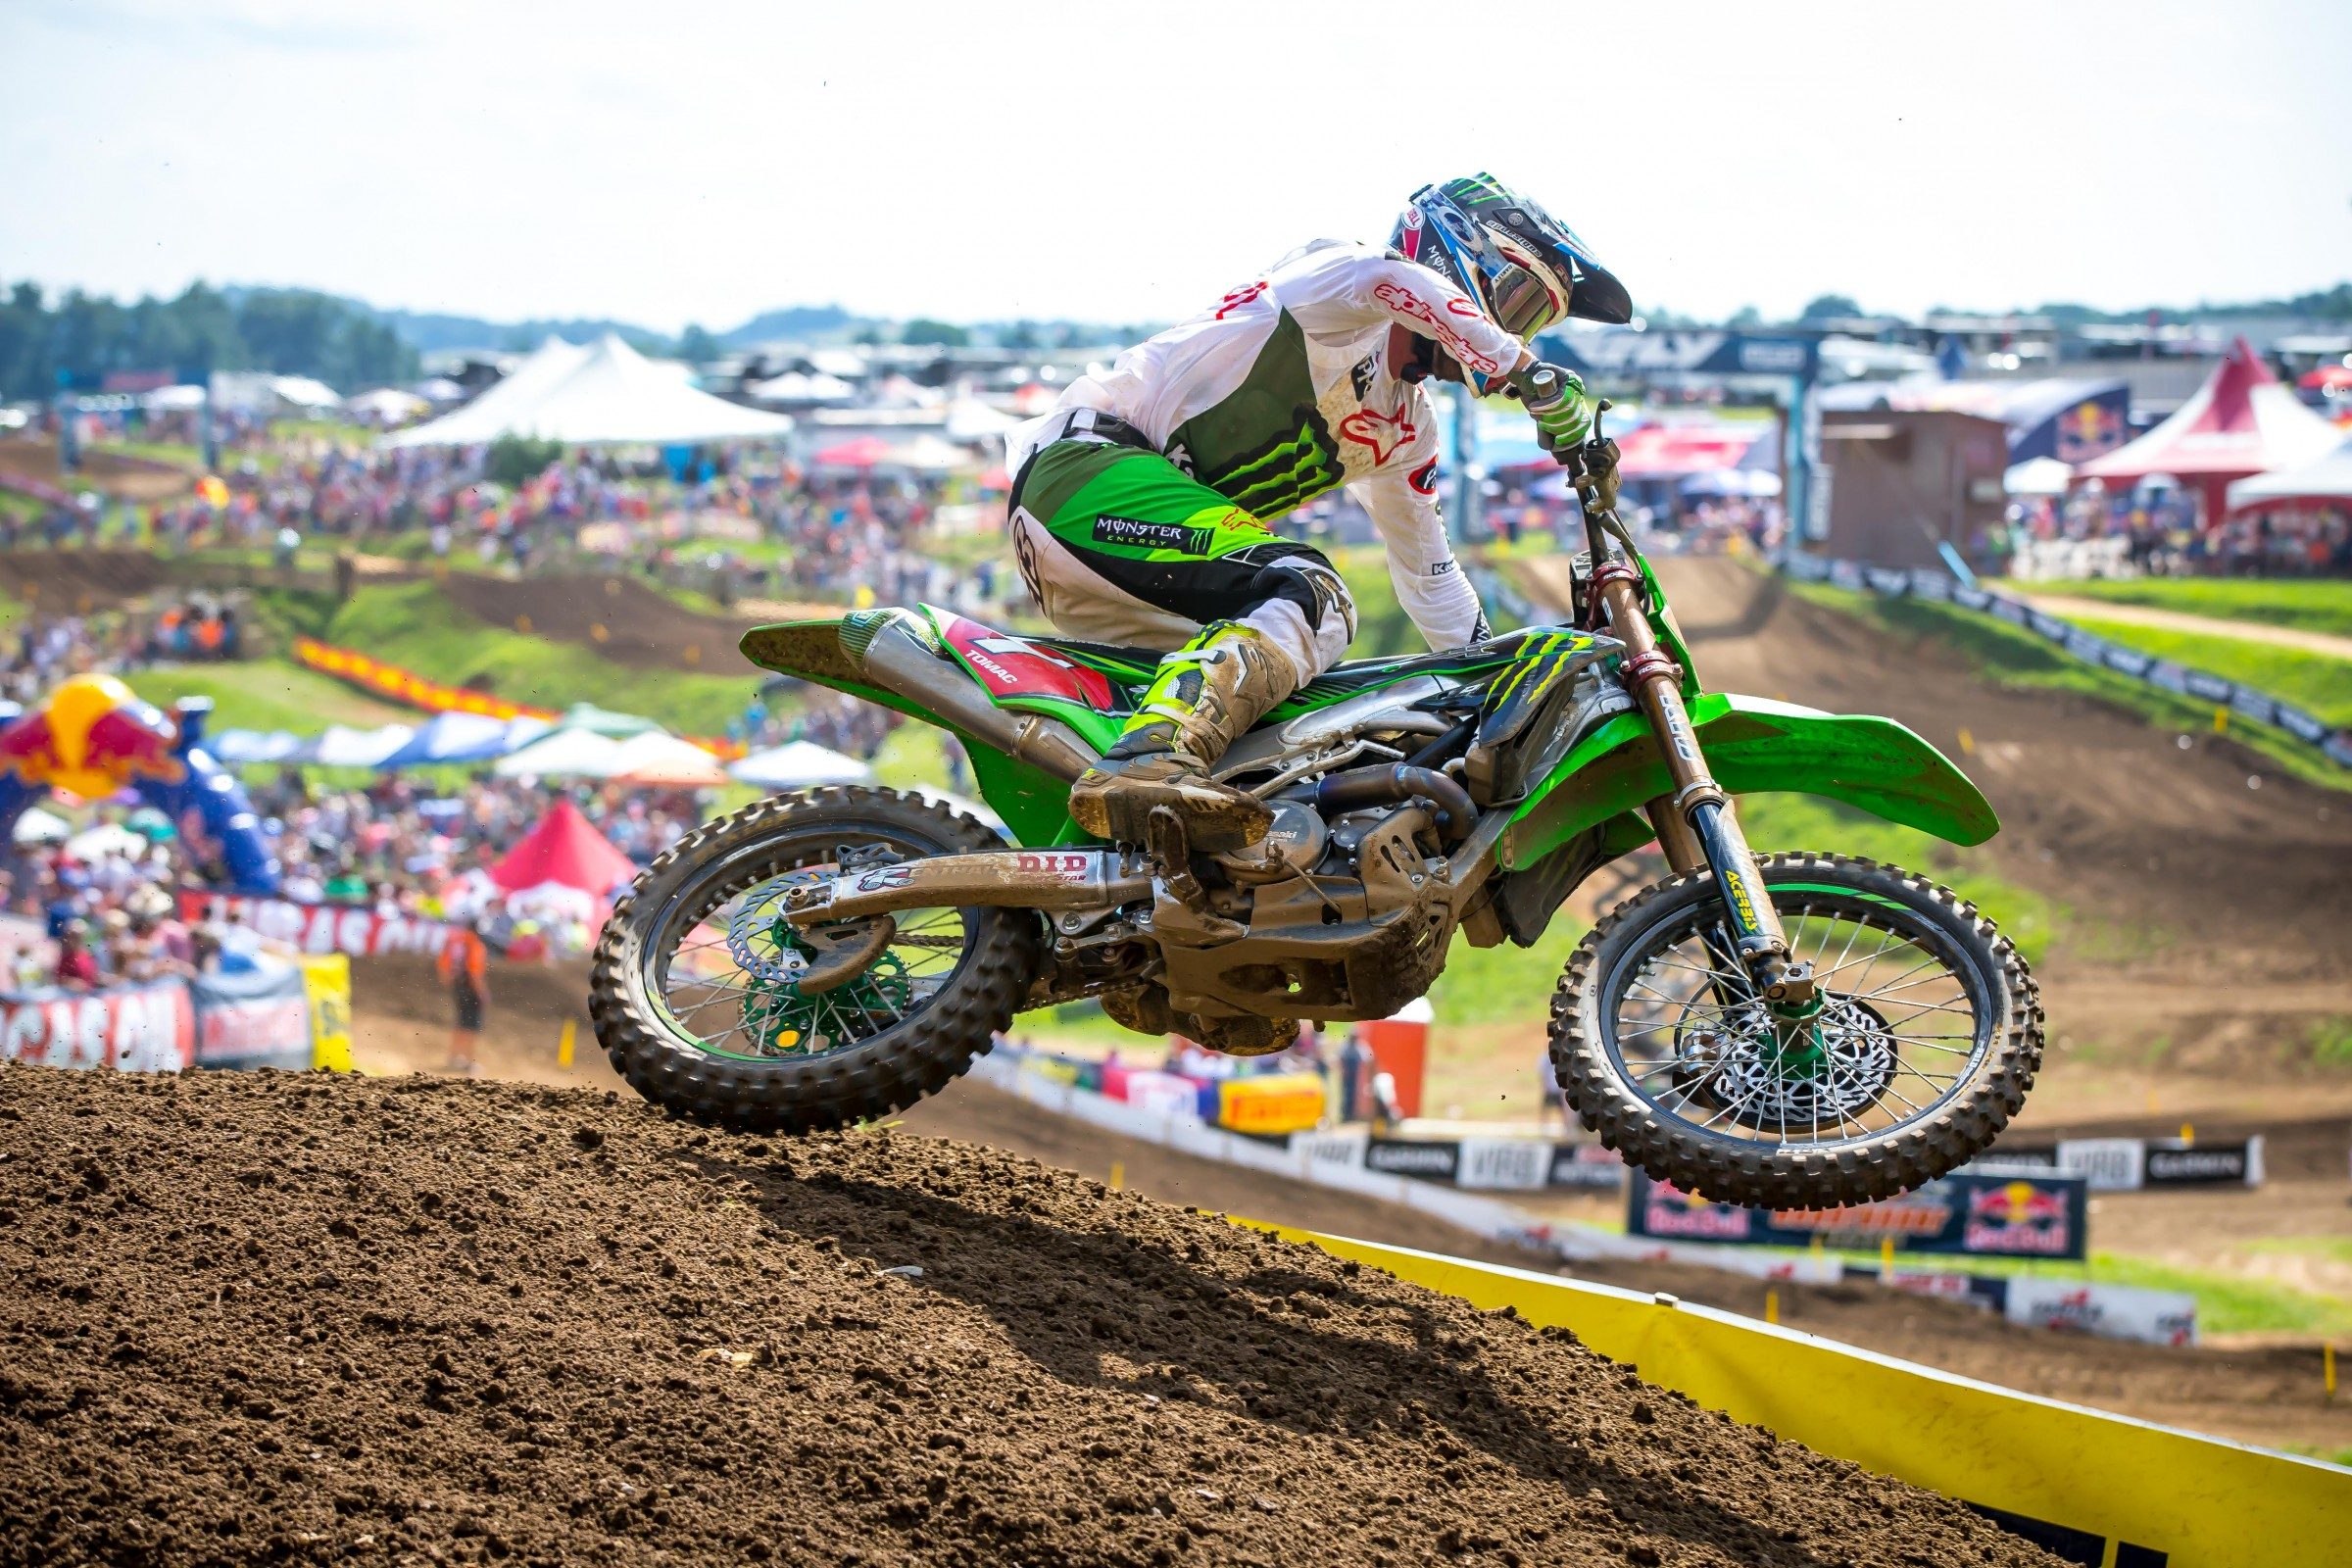 The fastest lap time of the season so far was set by Tomac in moto two at Muddy Creek.